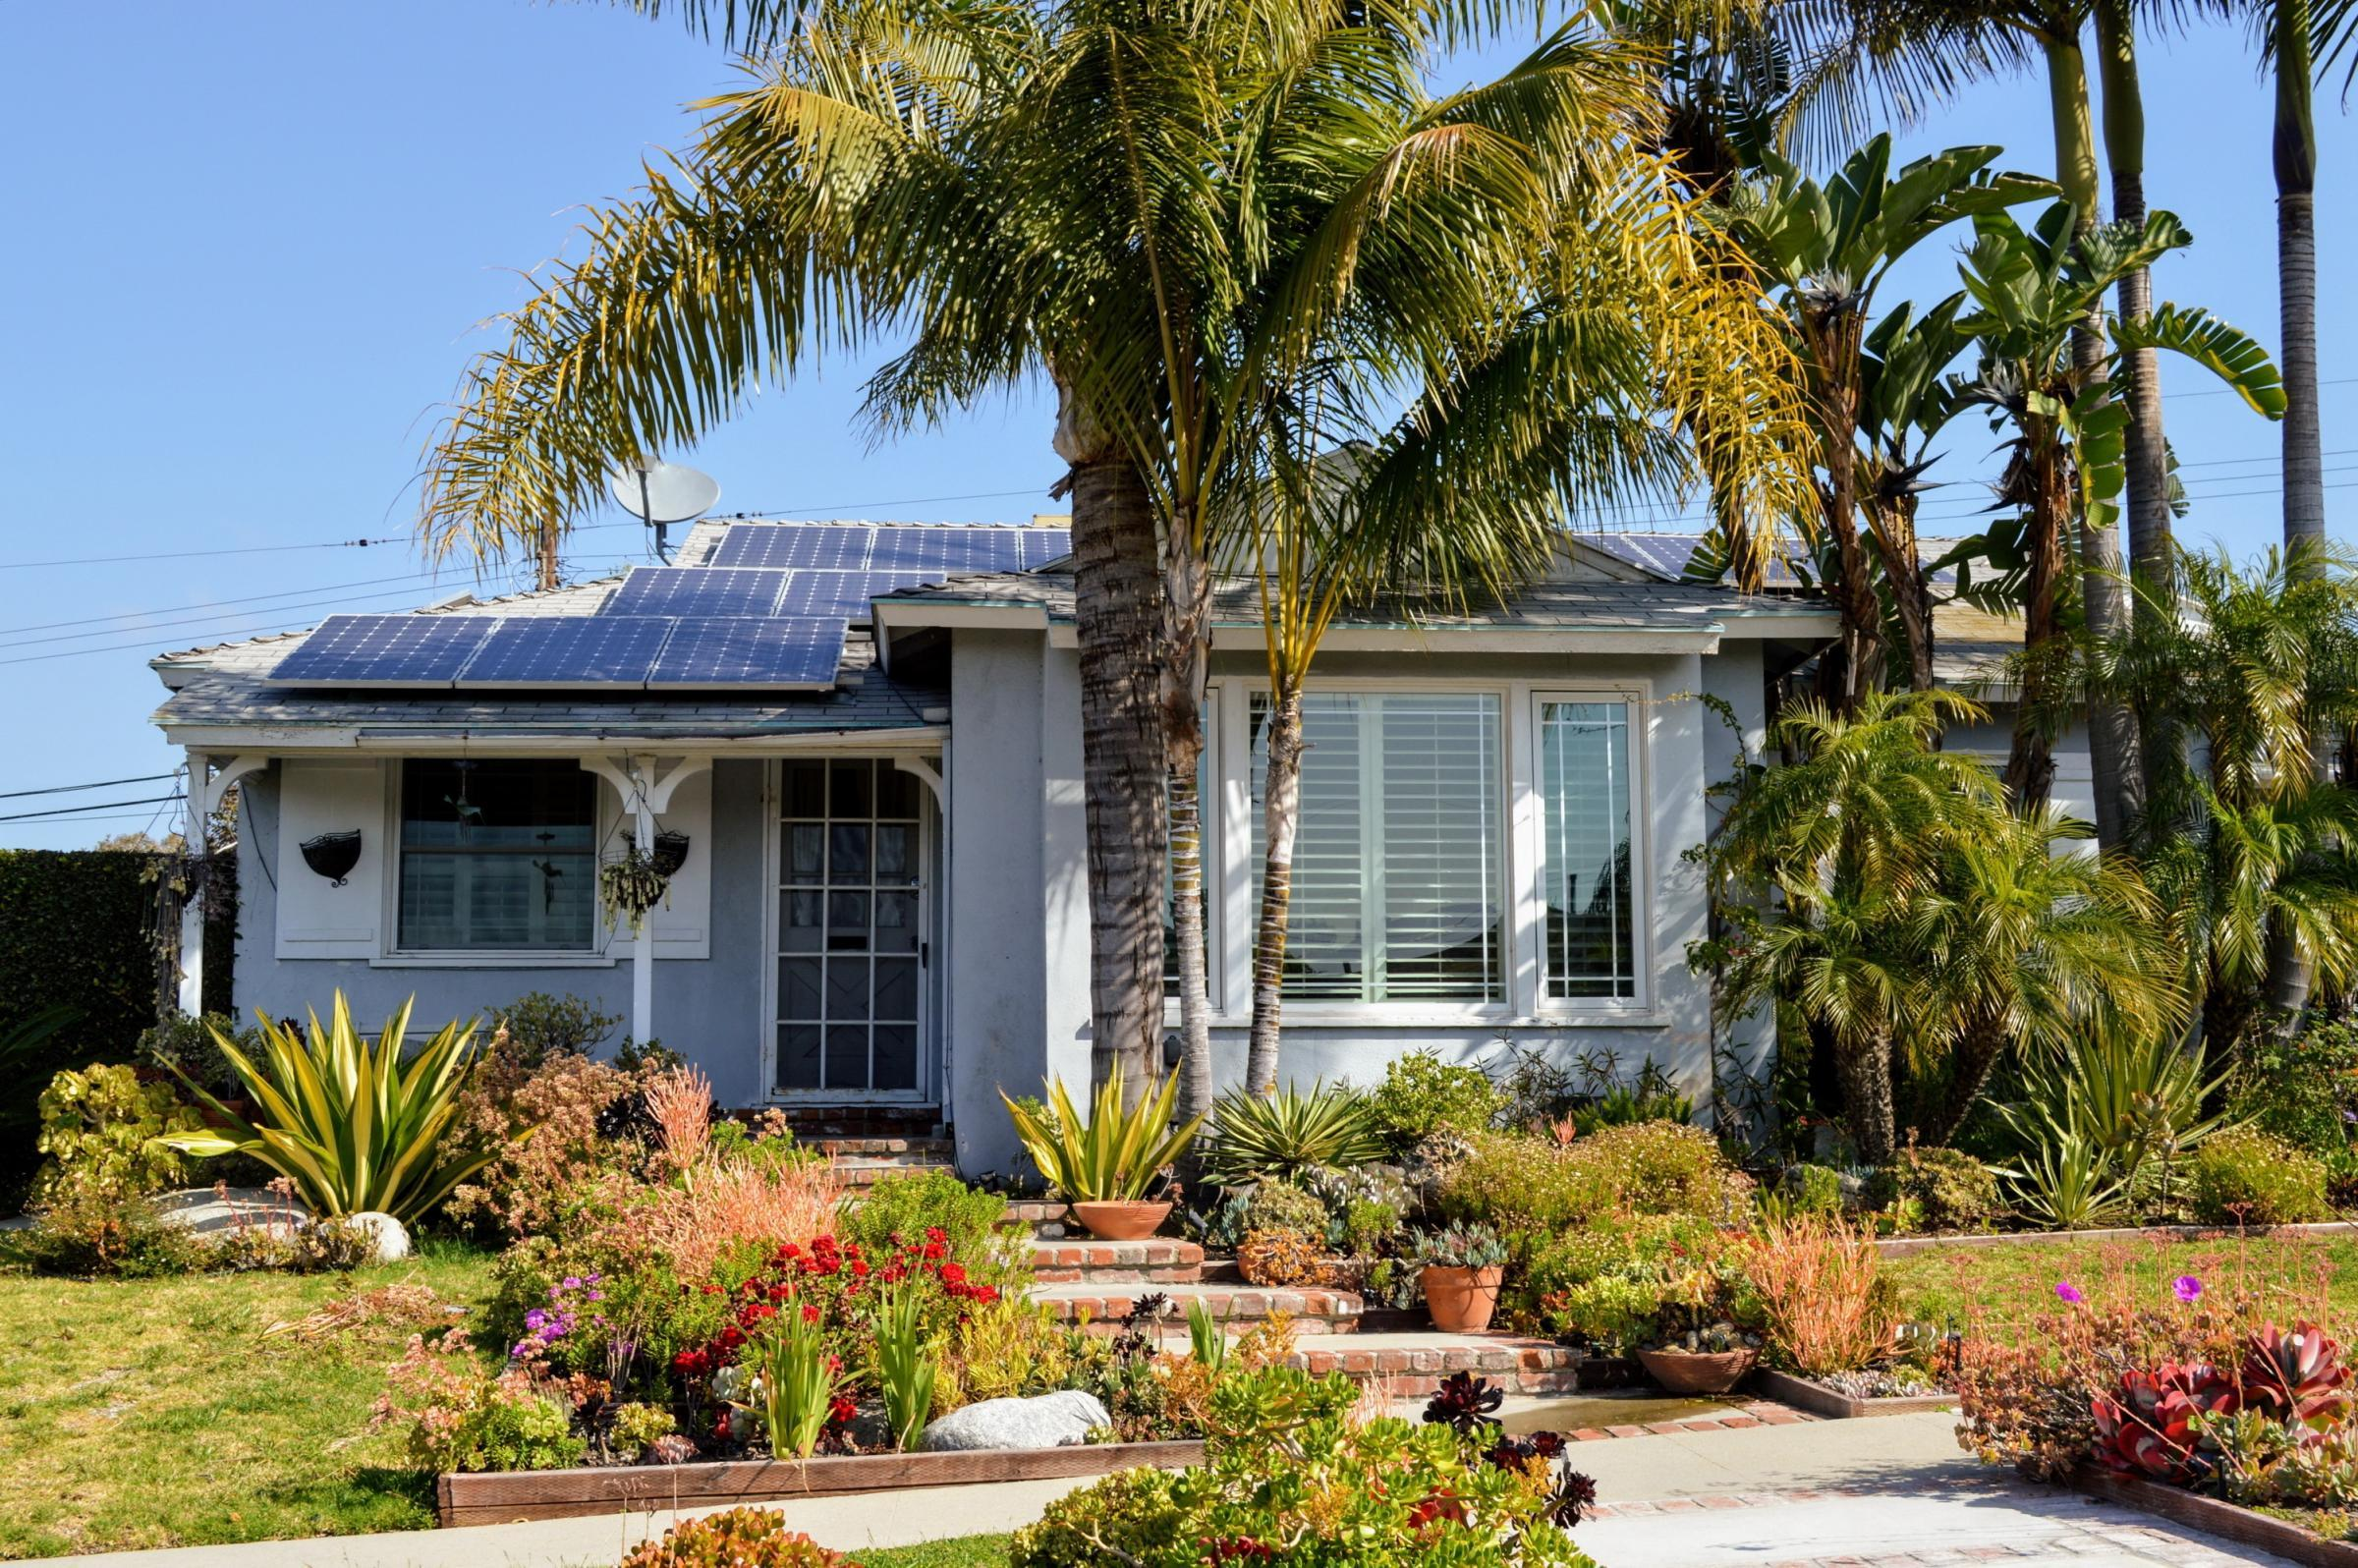 modern California home with solar panels on roof